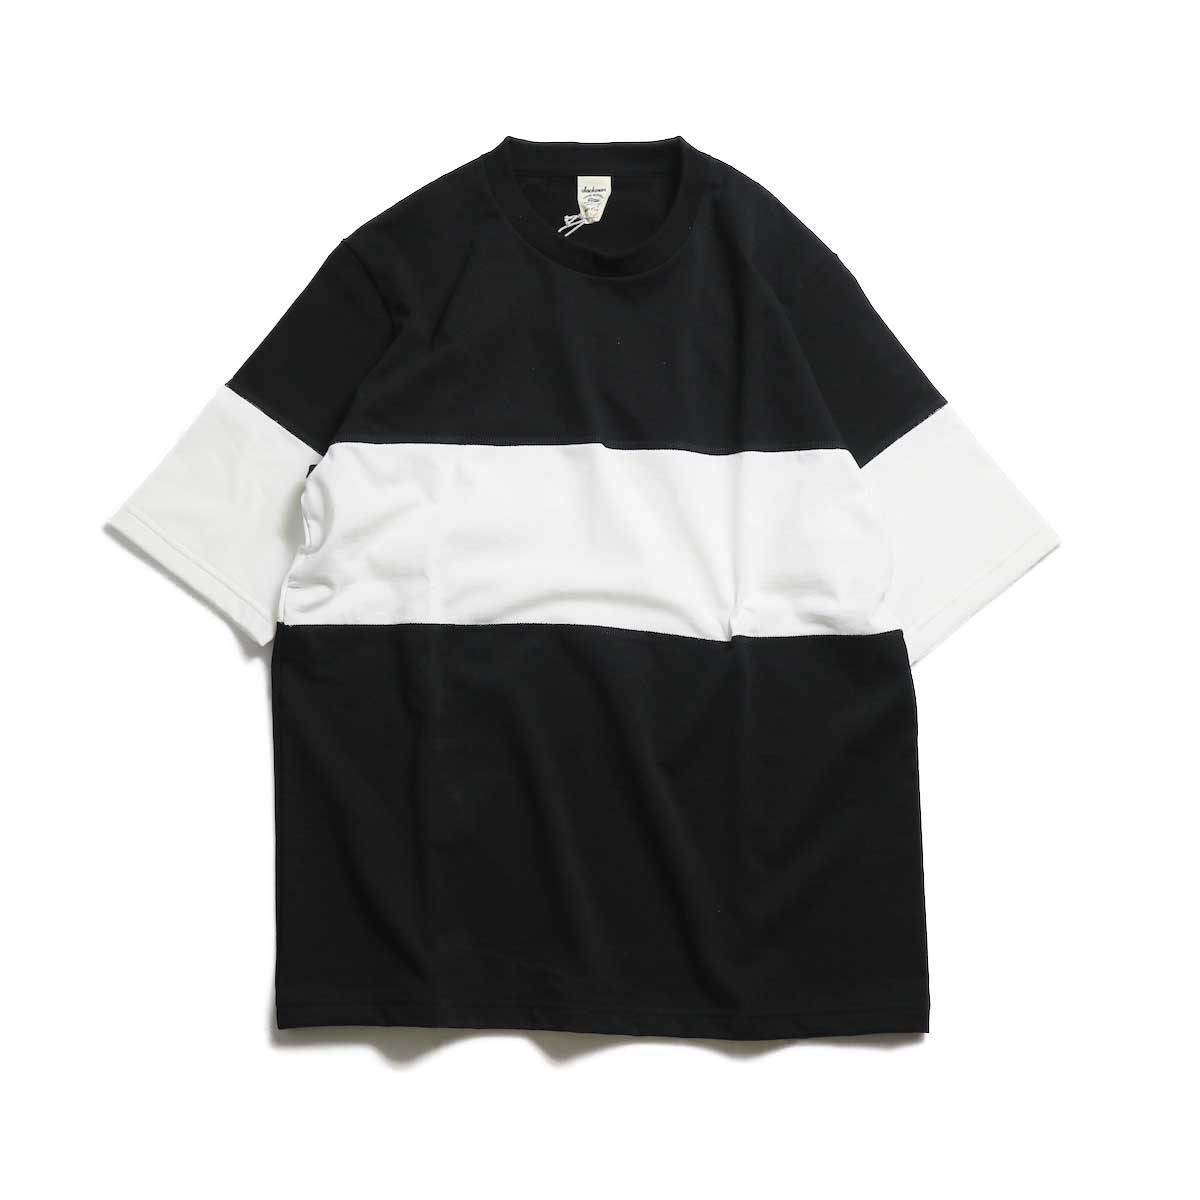 Jackman / Border T-Shirt -Black×White 2S